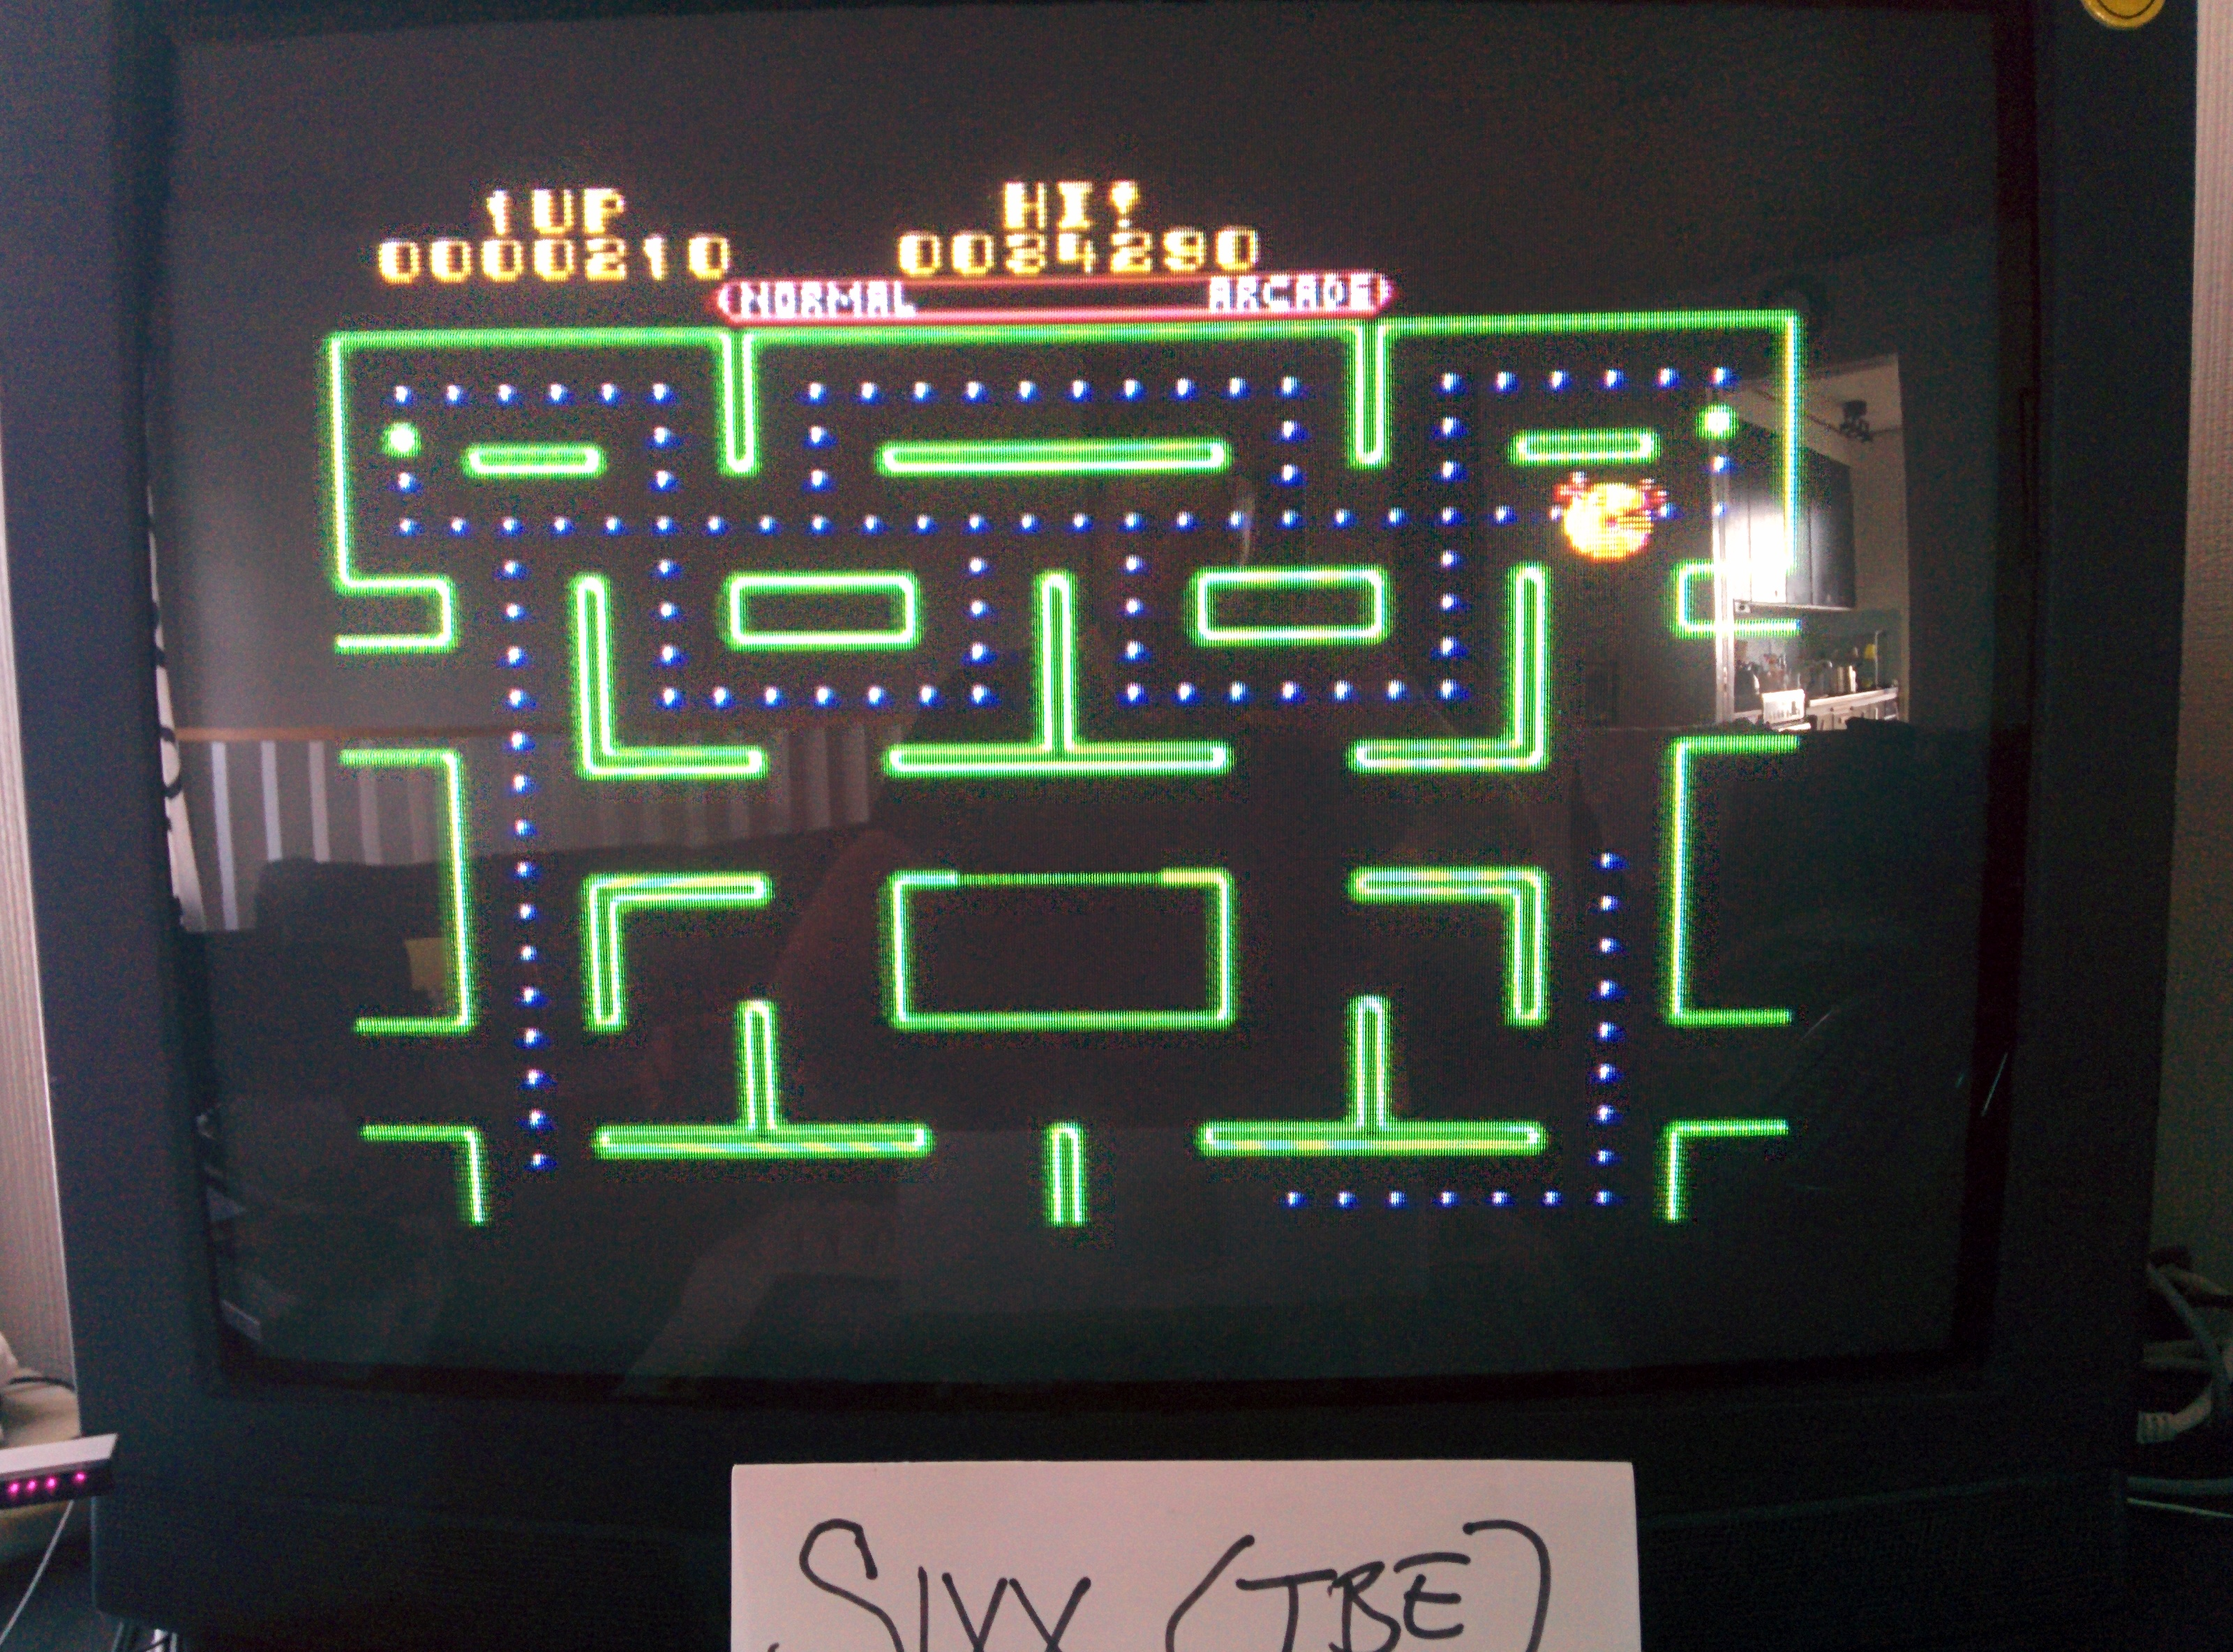 Sixx: Ms. Pac-Man (Sega Master System Emulated) 34,290 points on 2014-07-20 11:15:47